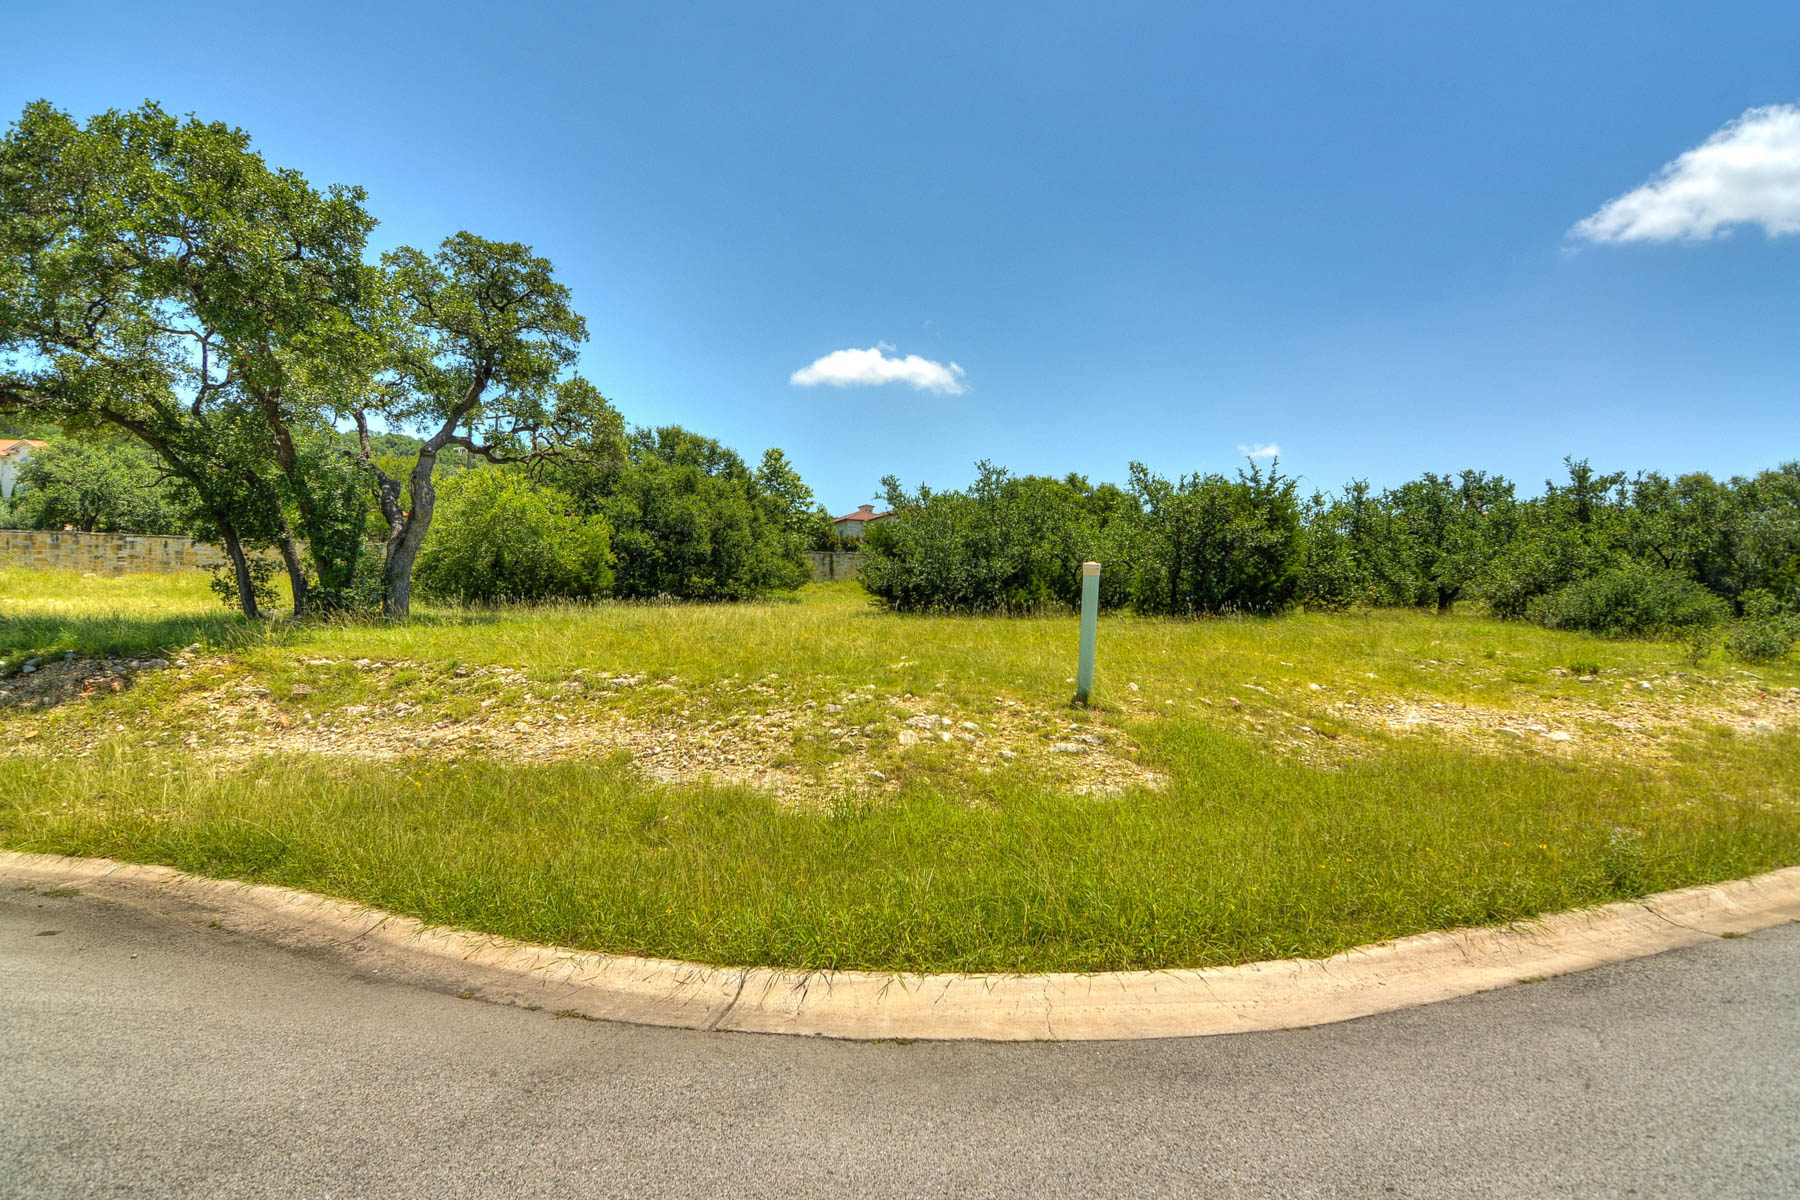 Additional photo for property listing at Exciting Opportunity in The Dominion 18 Chaumont San Antonio, Texas 78257 United States